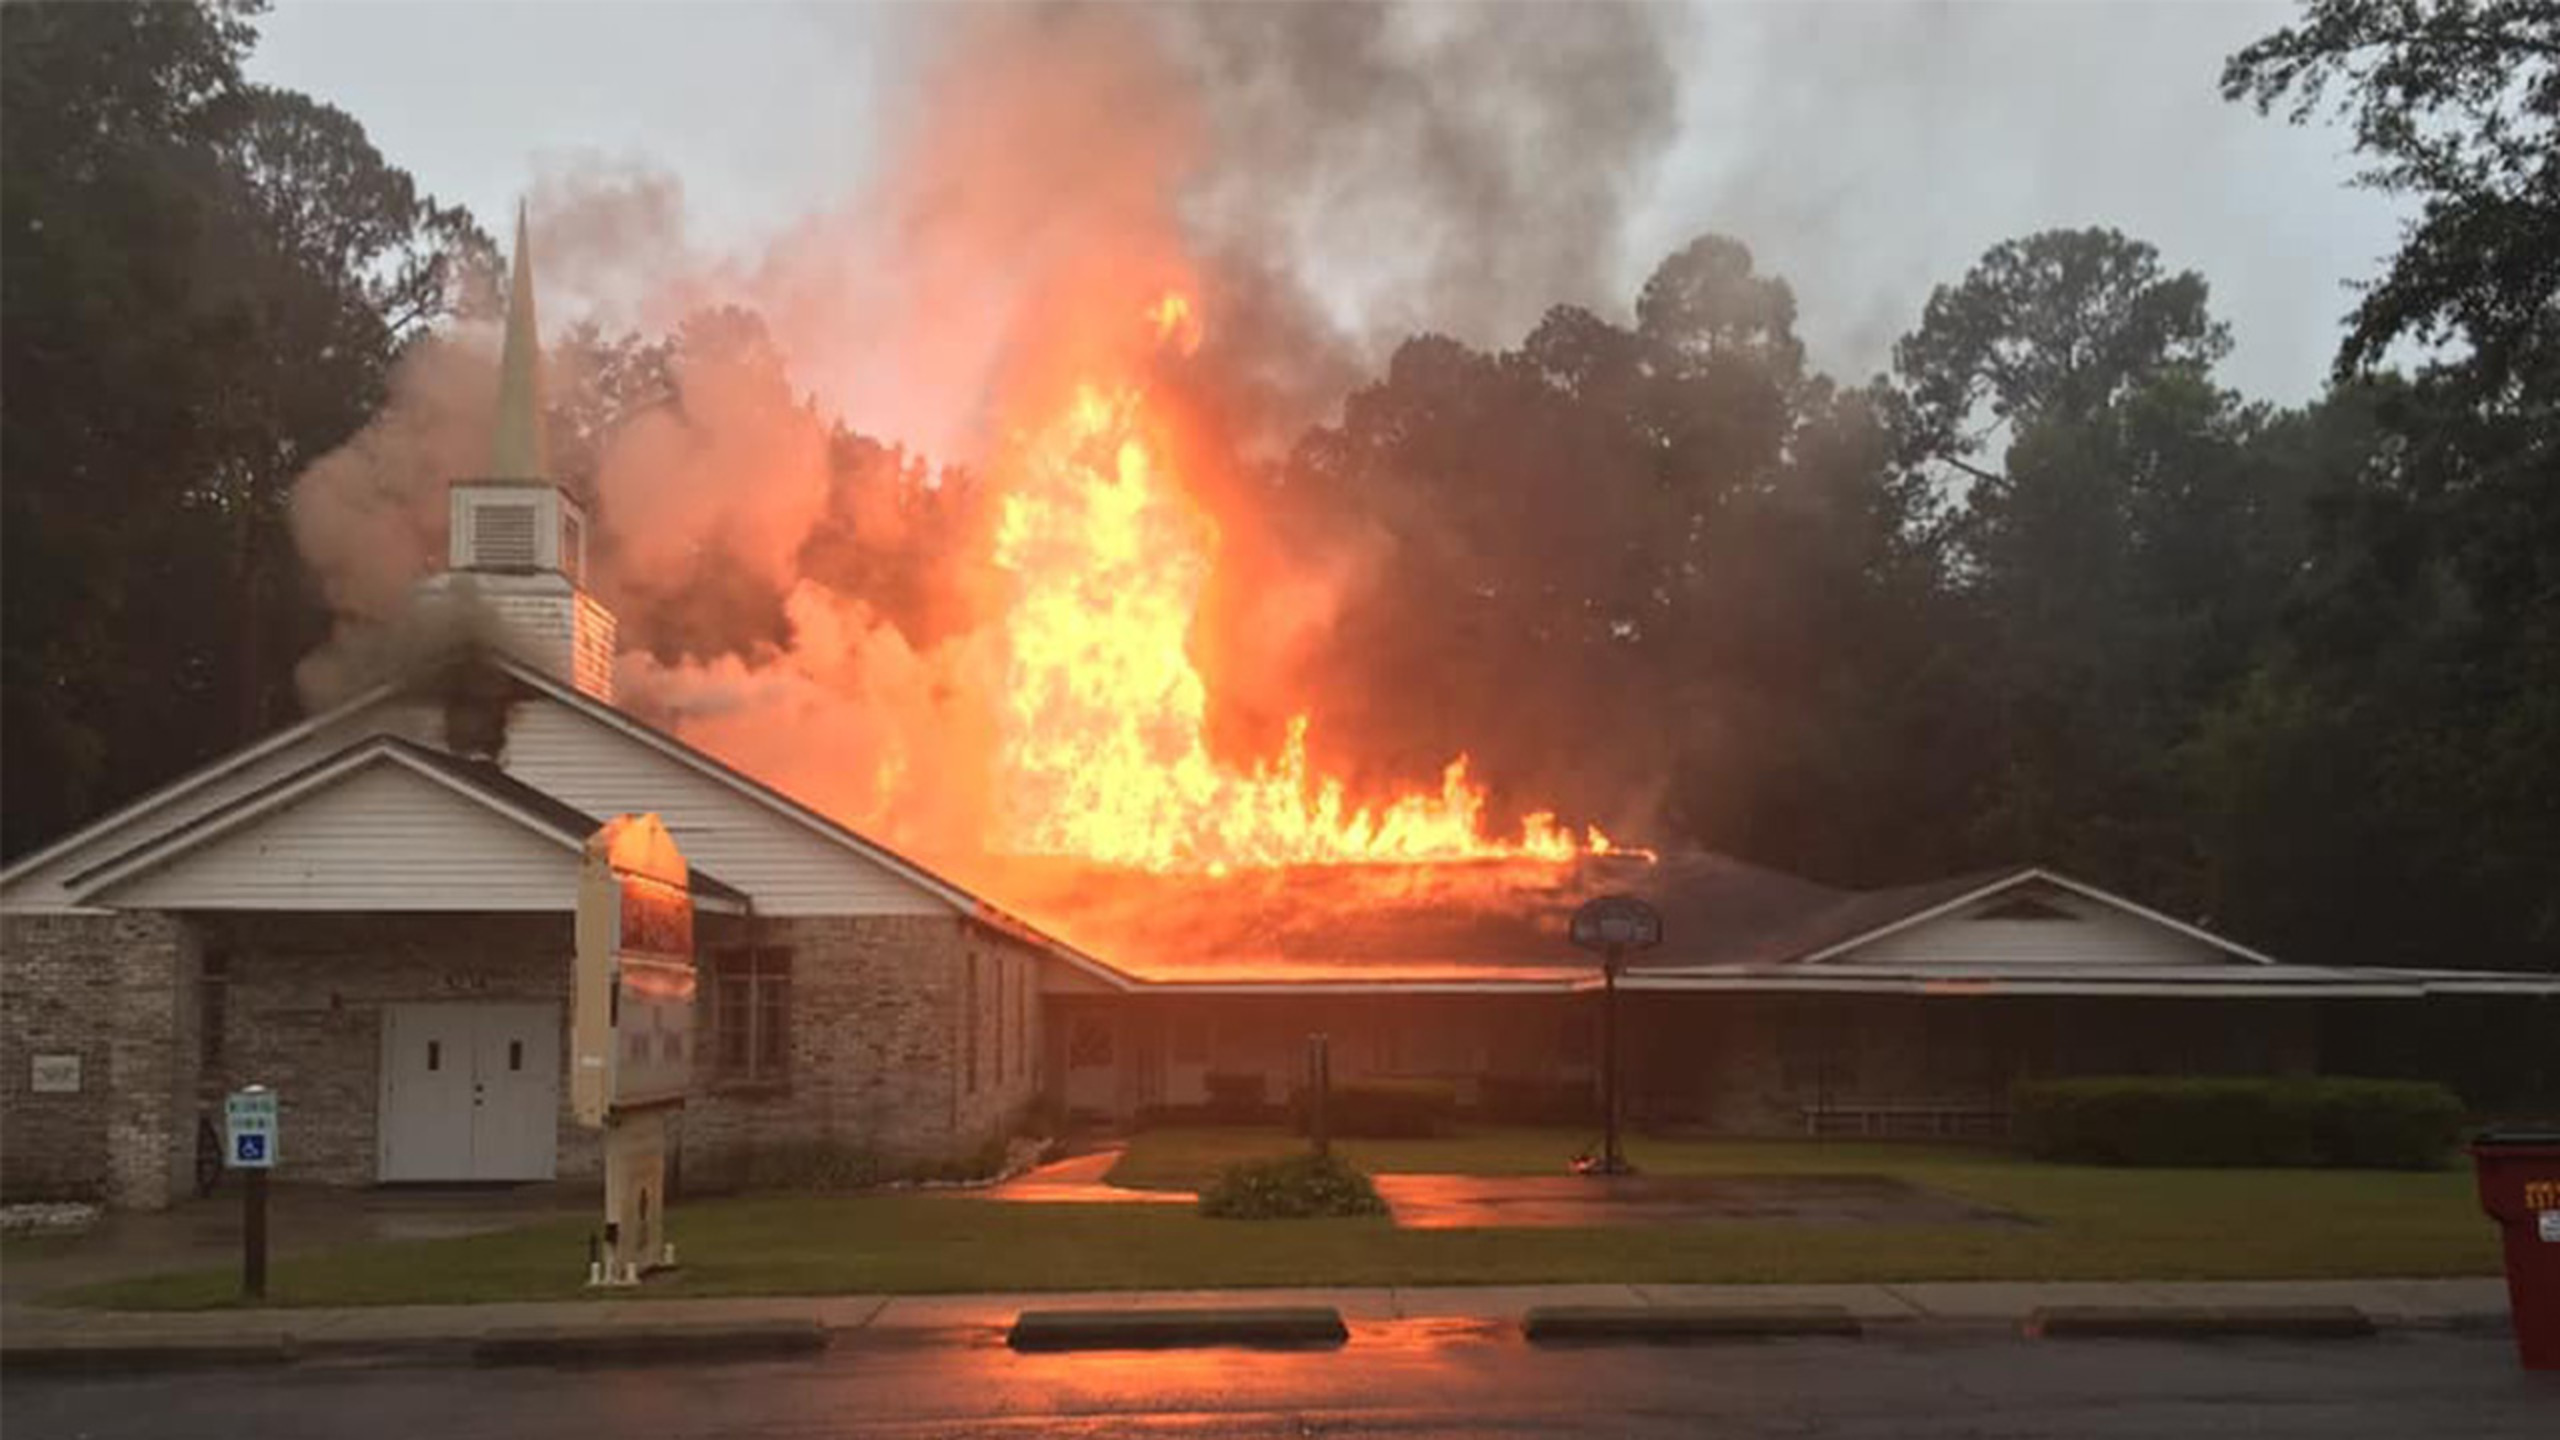 Florida church is a 'total loss' after fire caused by lightning strike